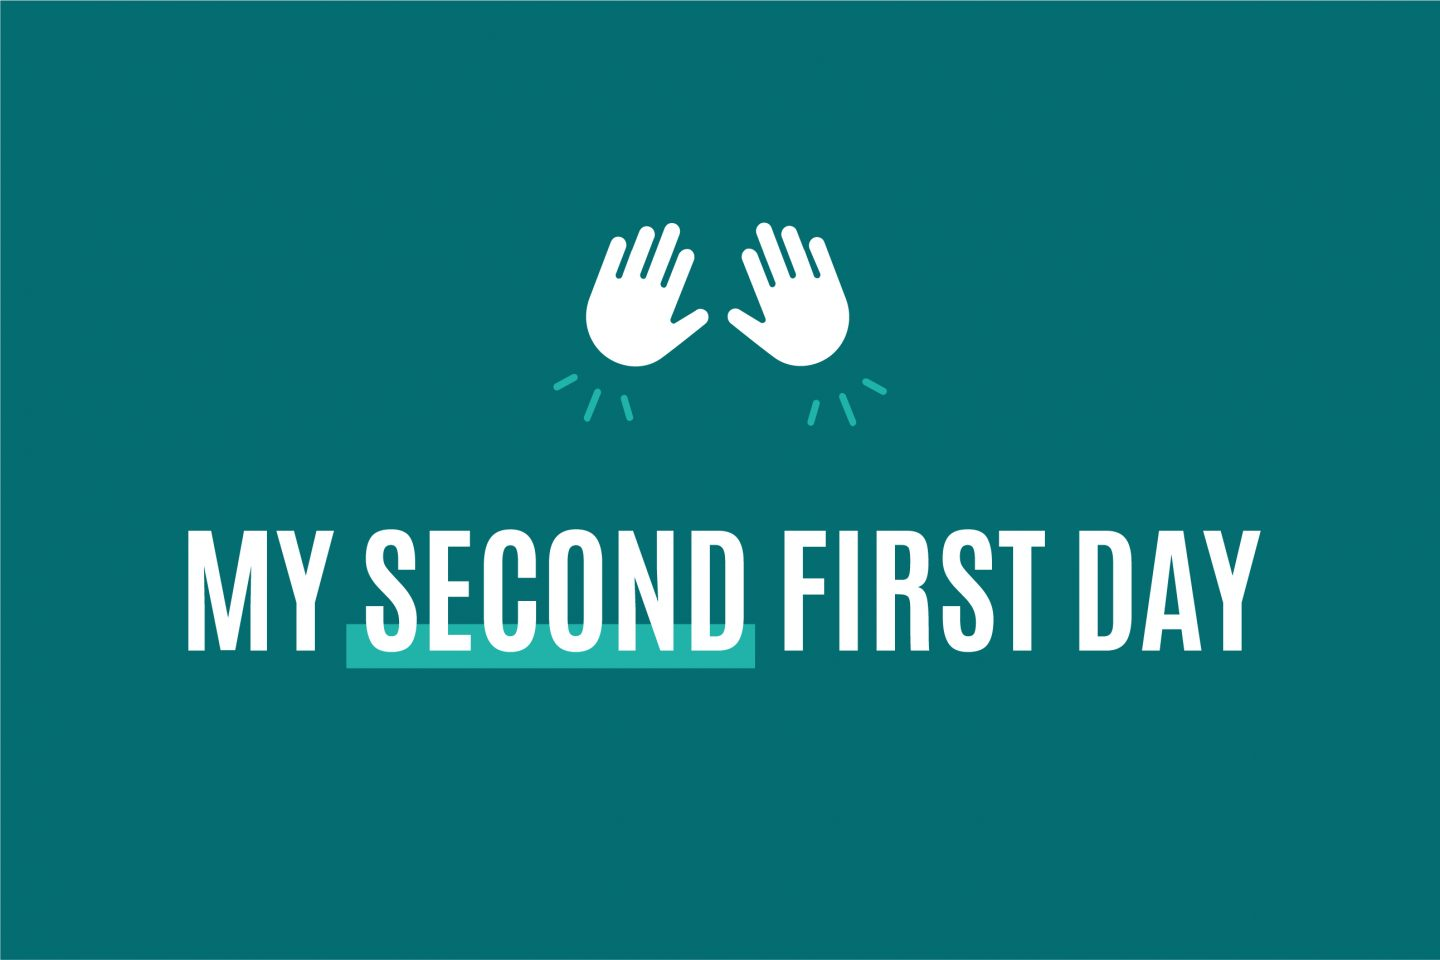 My Second First Day